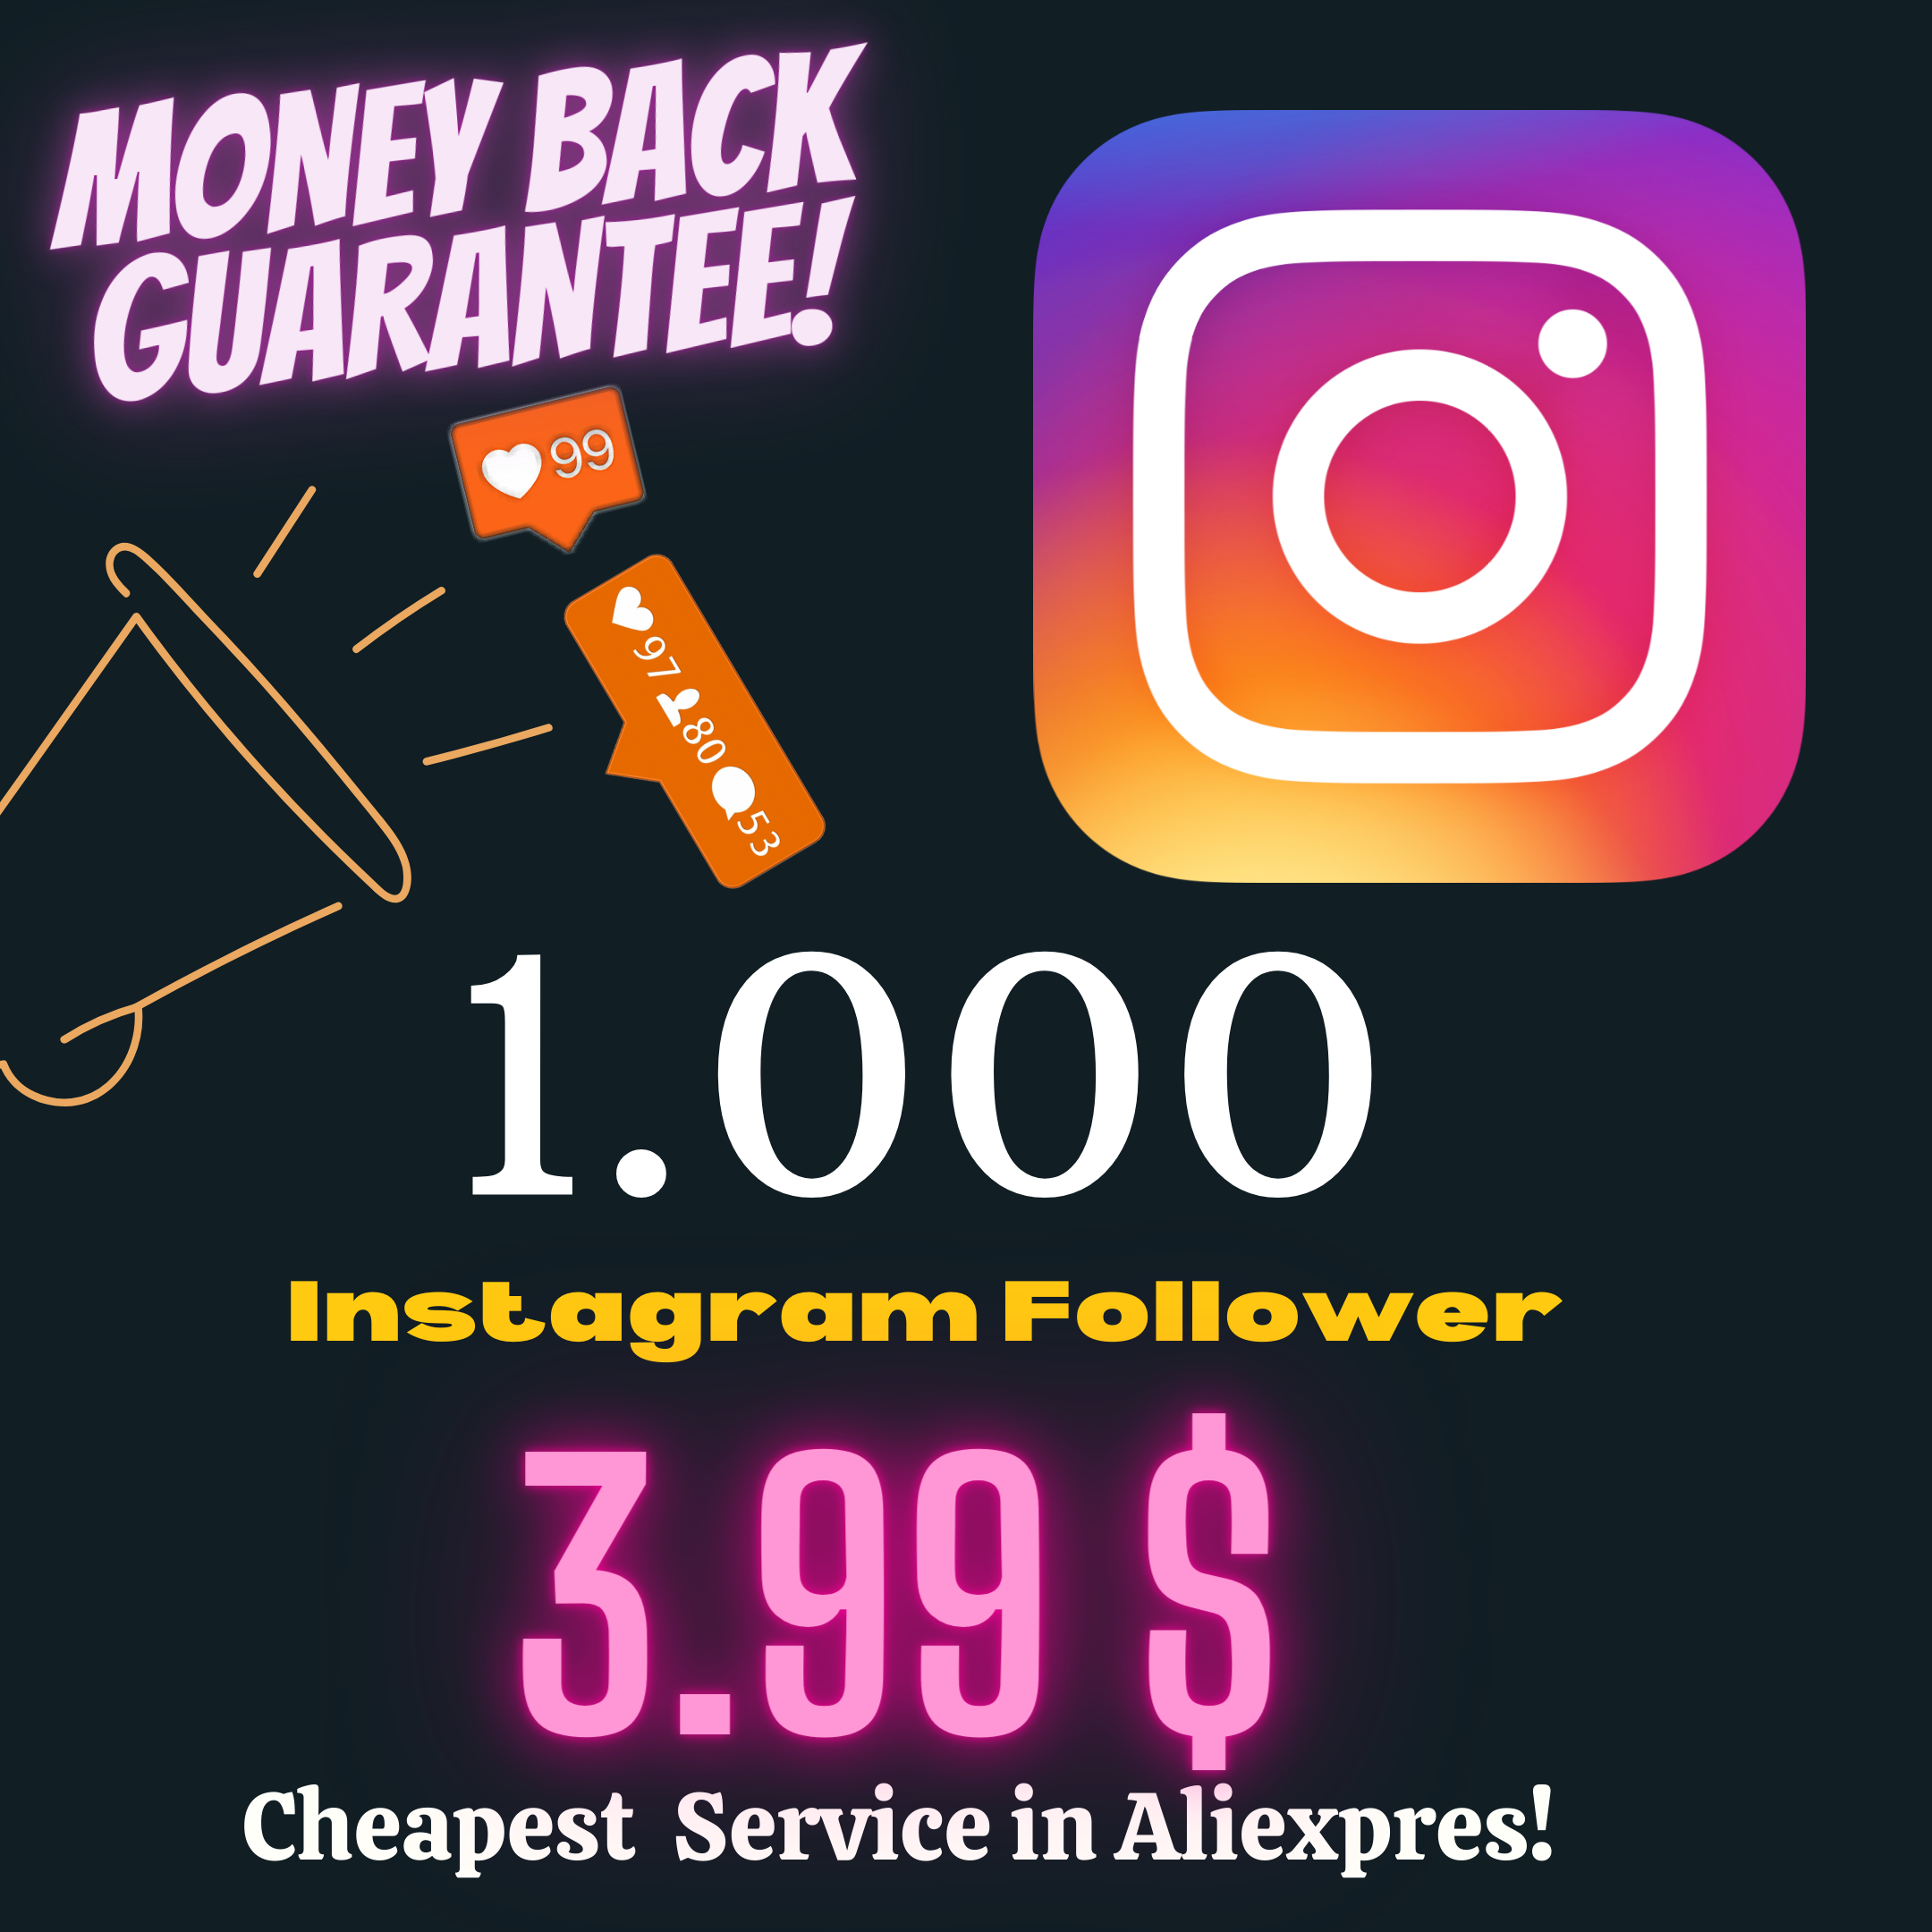 Followers Instagrames Viewsmoney Delivery-Sticker Likes Get Back-Guaranteefast